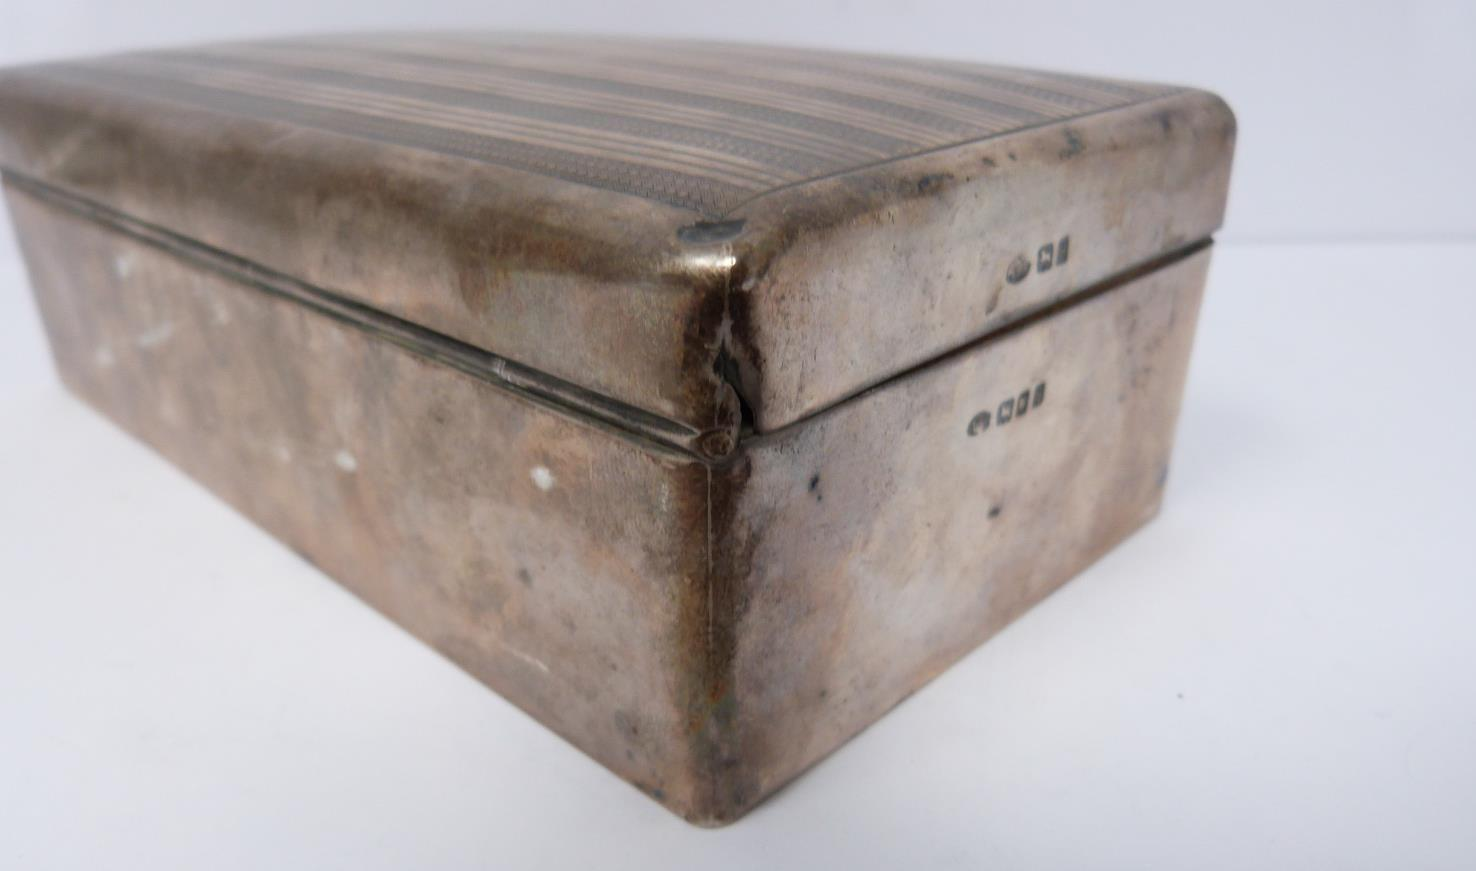 Two silver cigarette cases and a silver cigarette box, rectangular engine turned decoration case, - Image 6 of 14